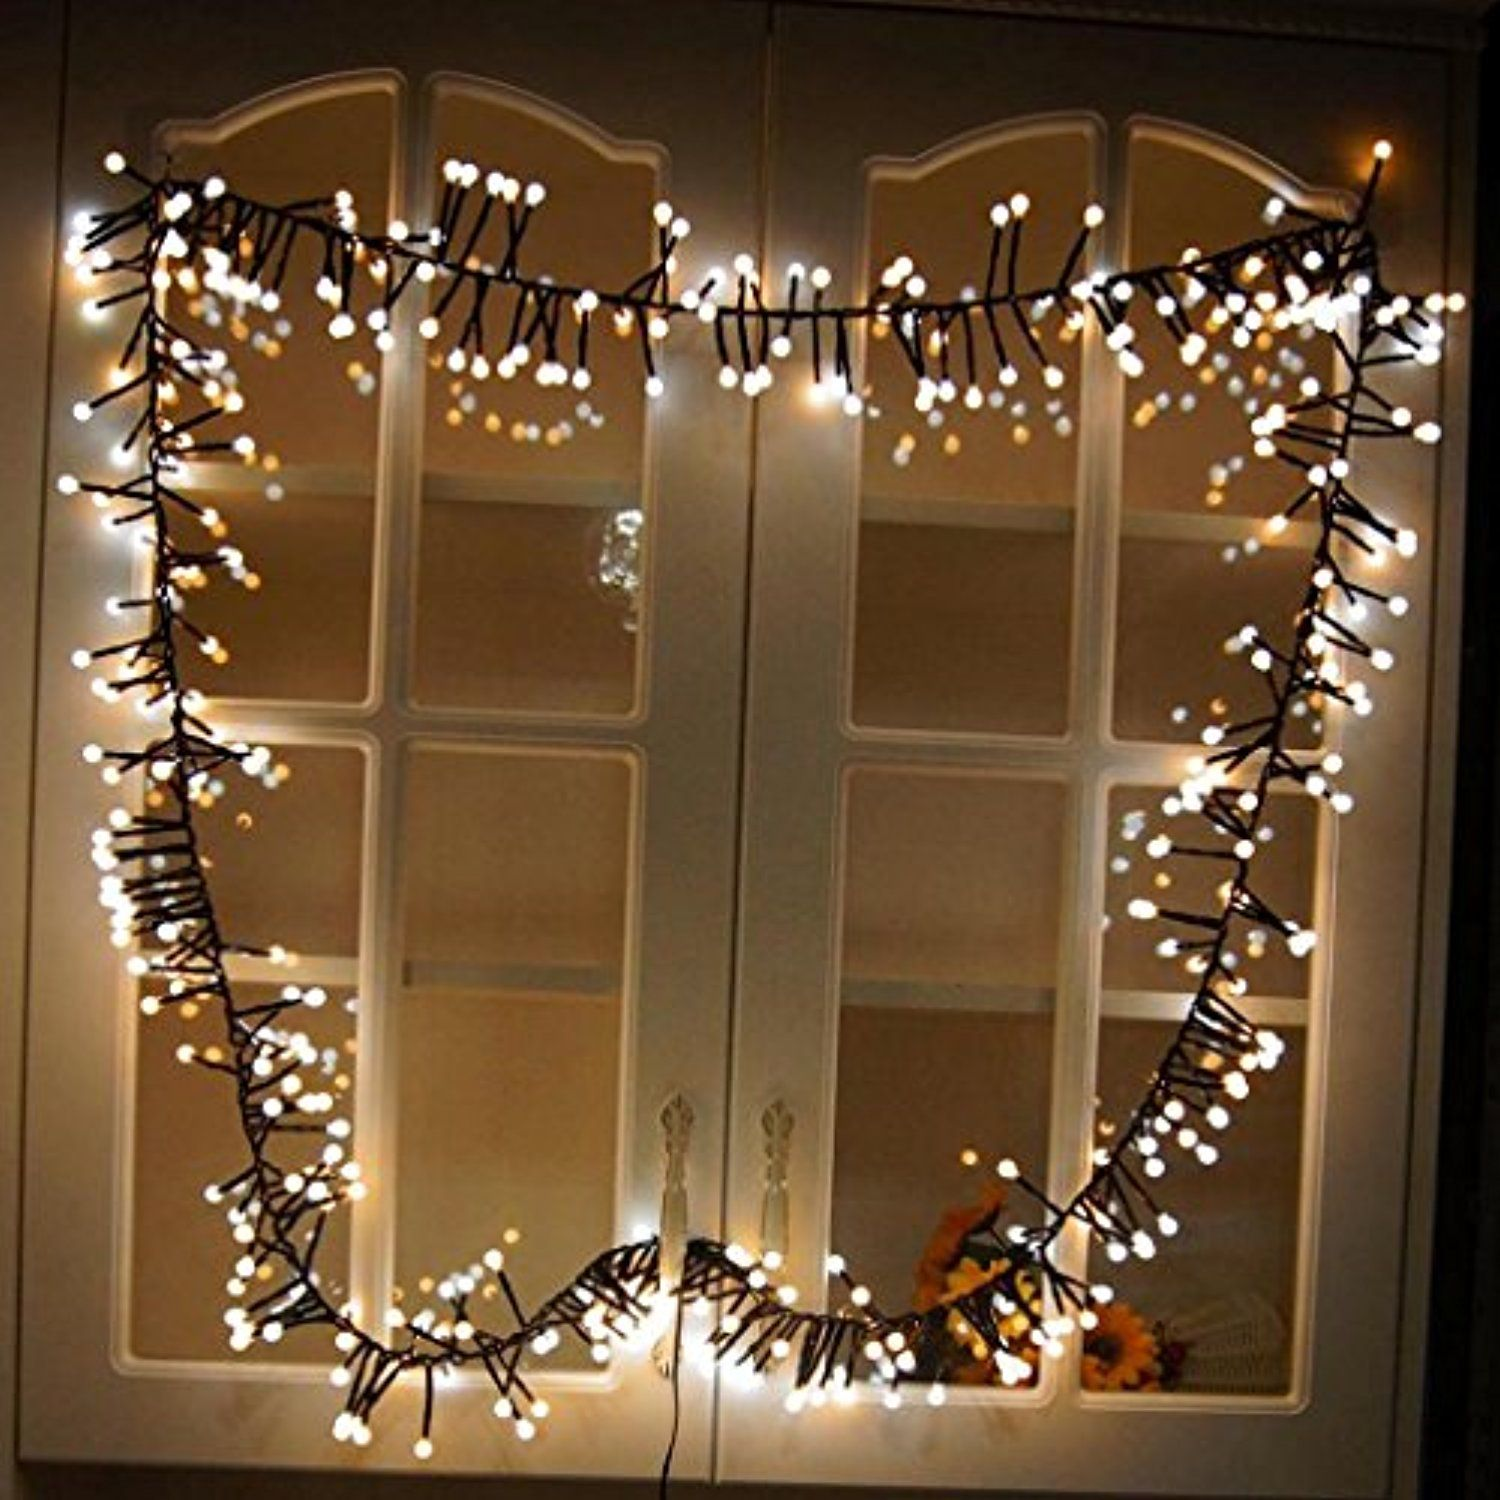 yuxing 400 led fairy starry string lights christmas lights for window curtain outdoor indoor patio party